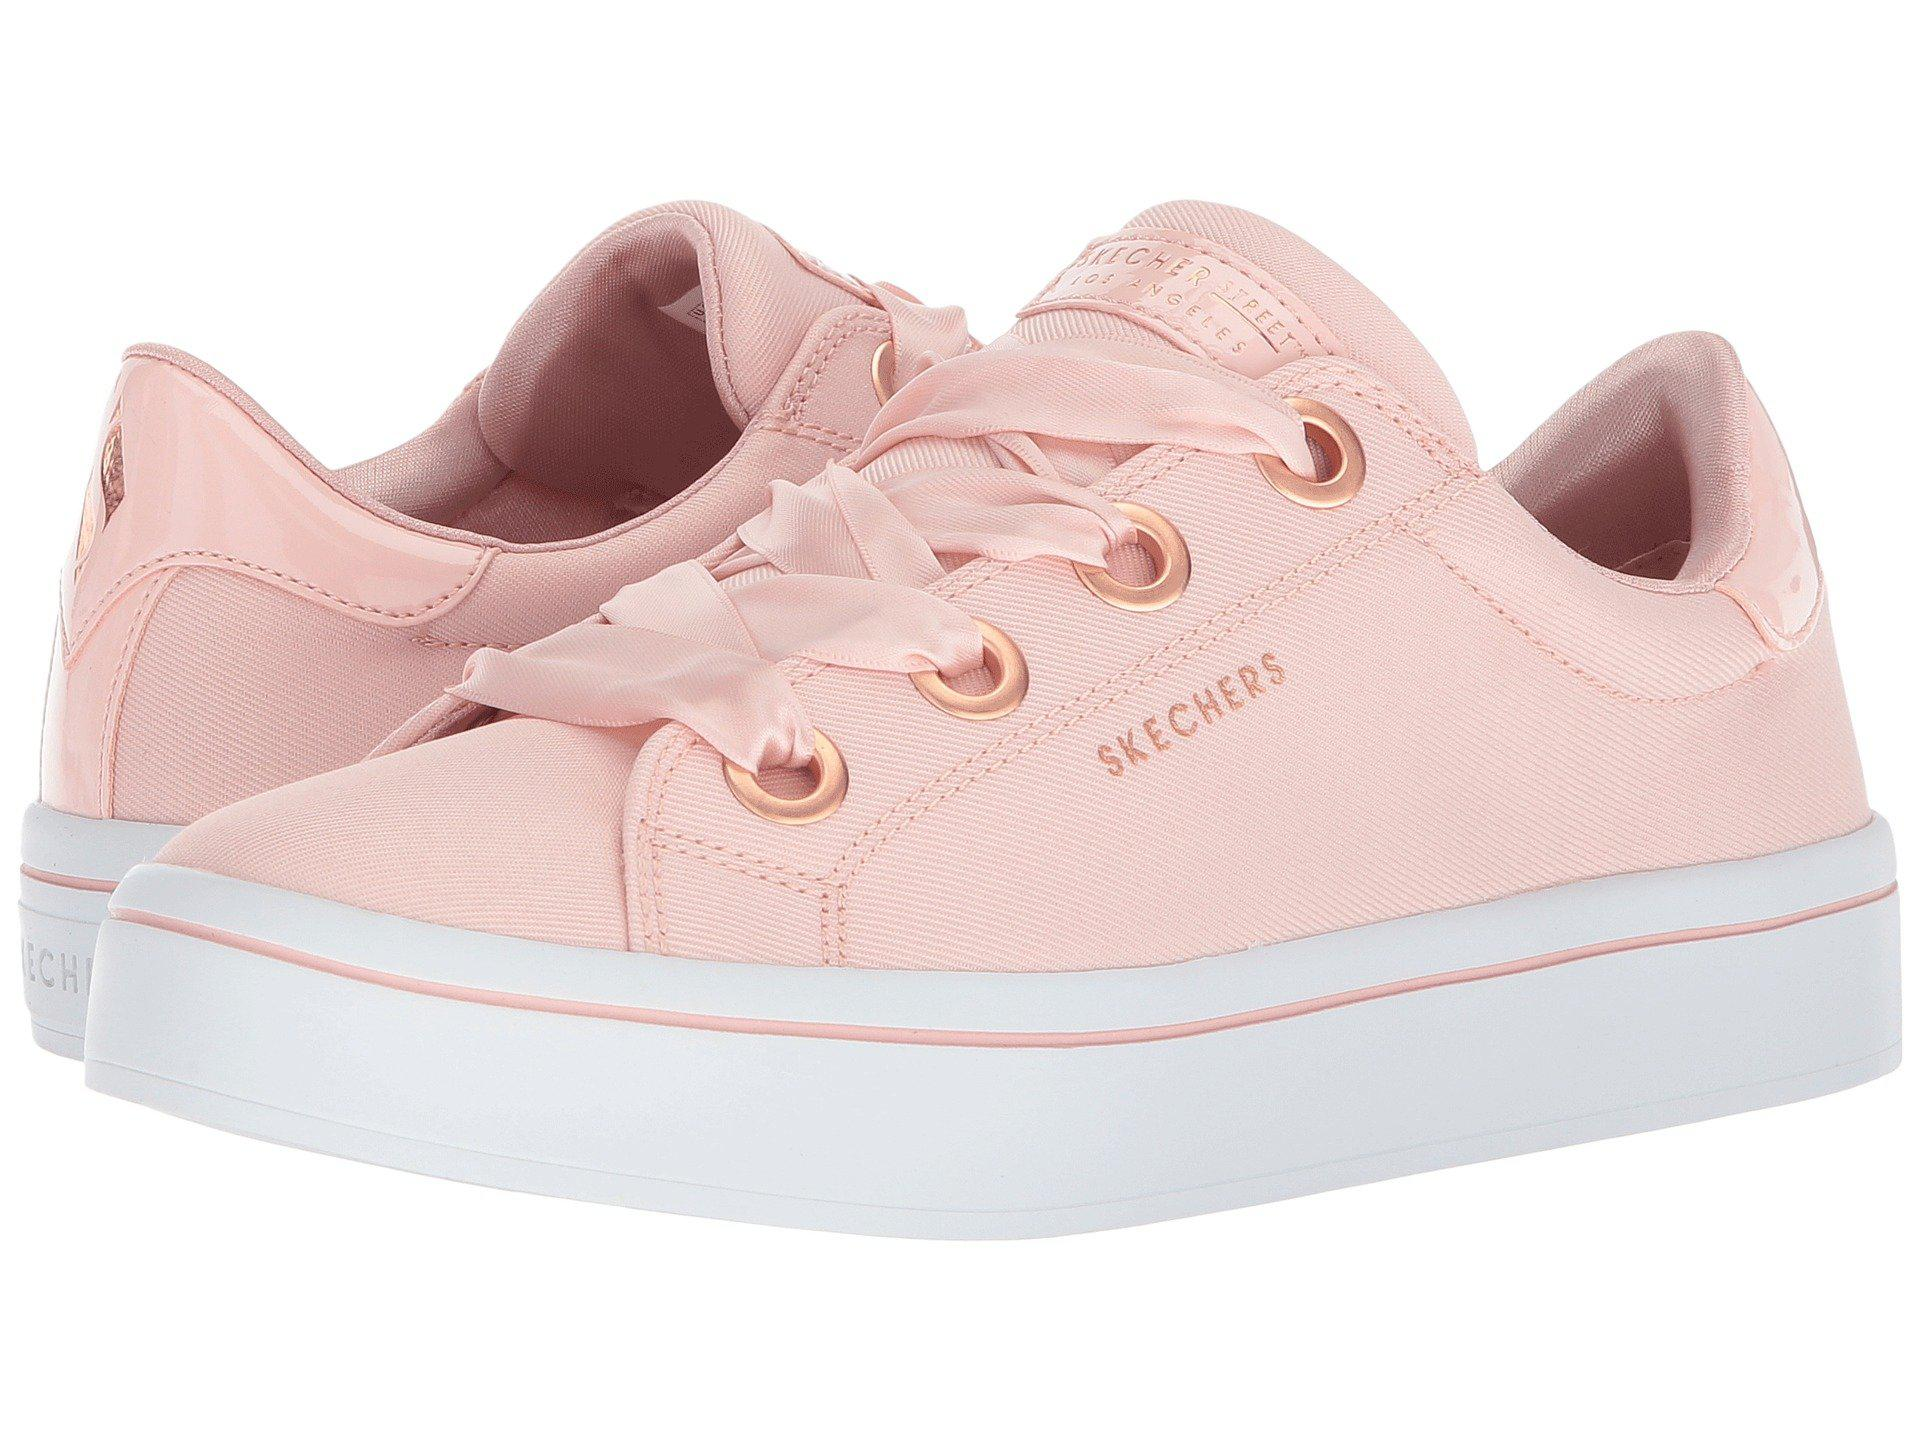 8bba7a4406bf Lyst - Skechers Hi-lite - Satin Stoppers in Pink - Save 35%